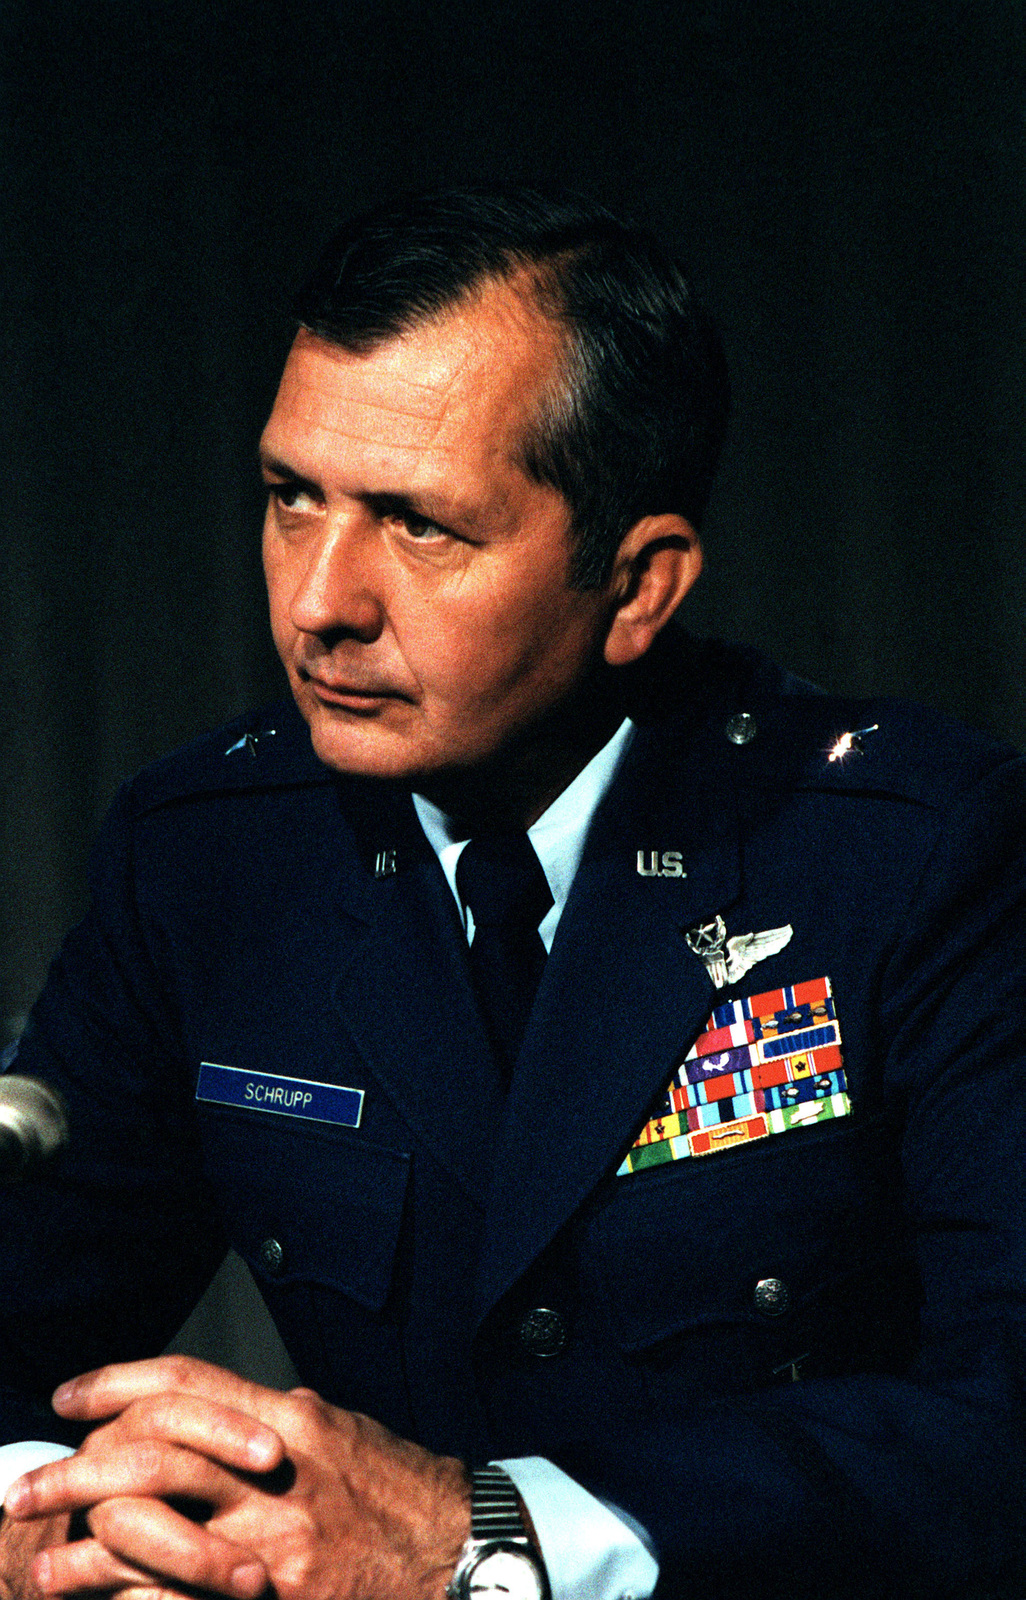 Brigadier General Walter C. Schrupp, Commander, 8th Air Force, takes part in a series of media training seminars